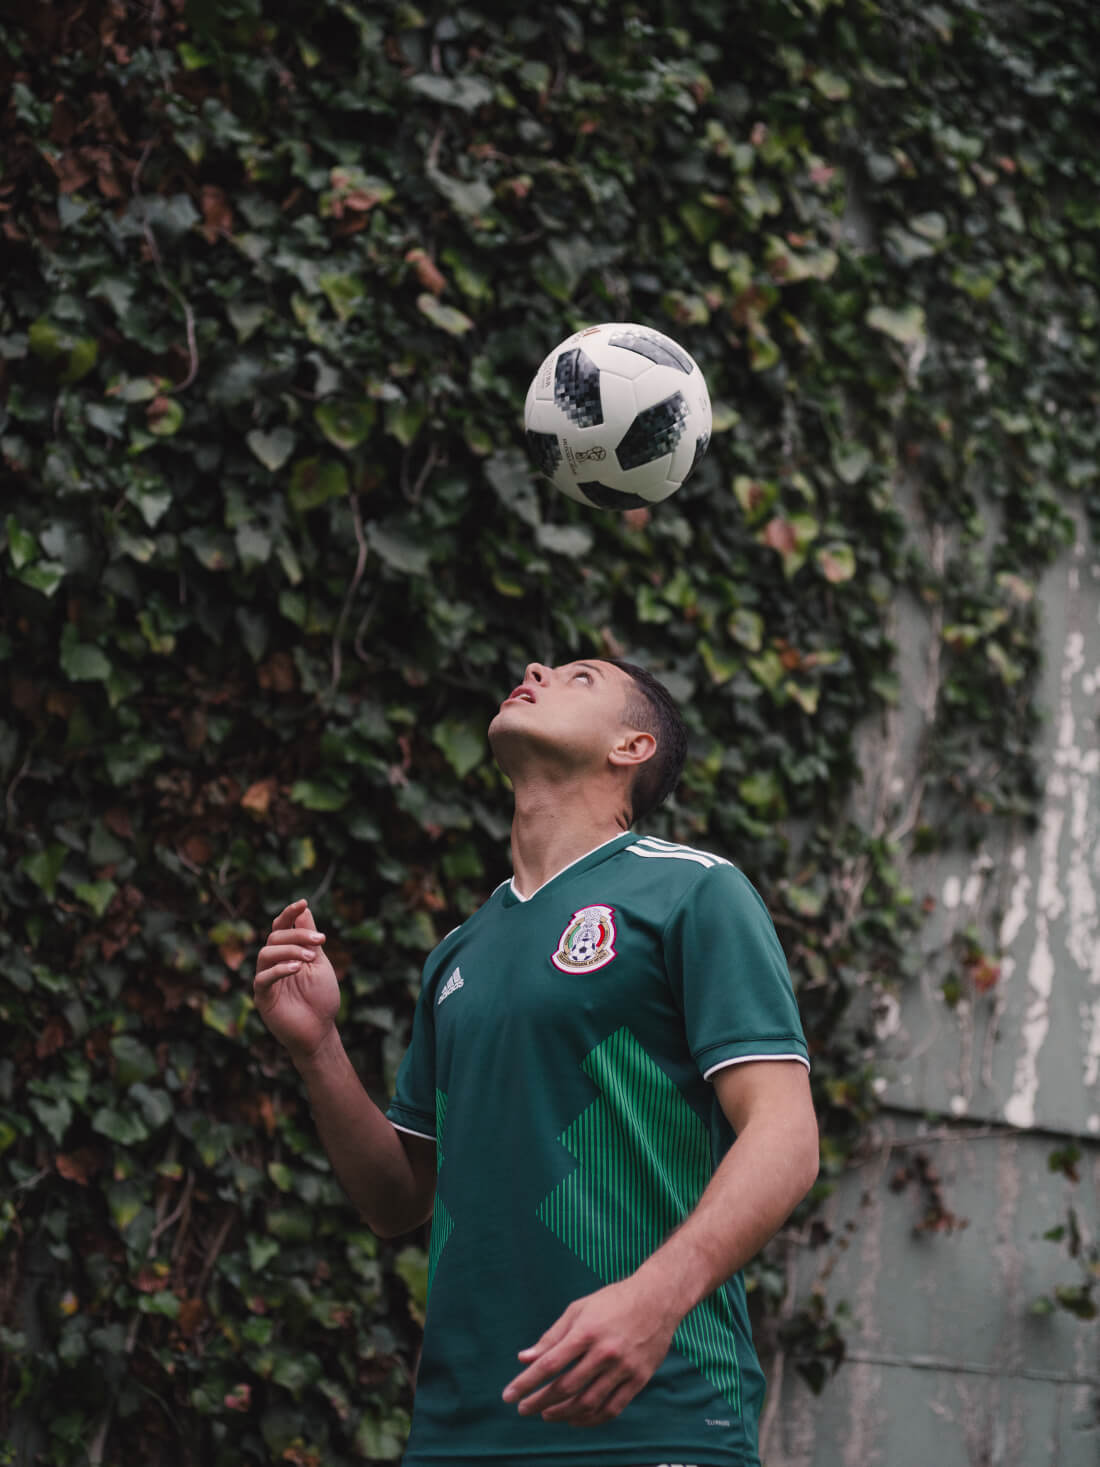 soccerbible-mexico-hires-5548